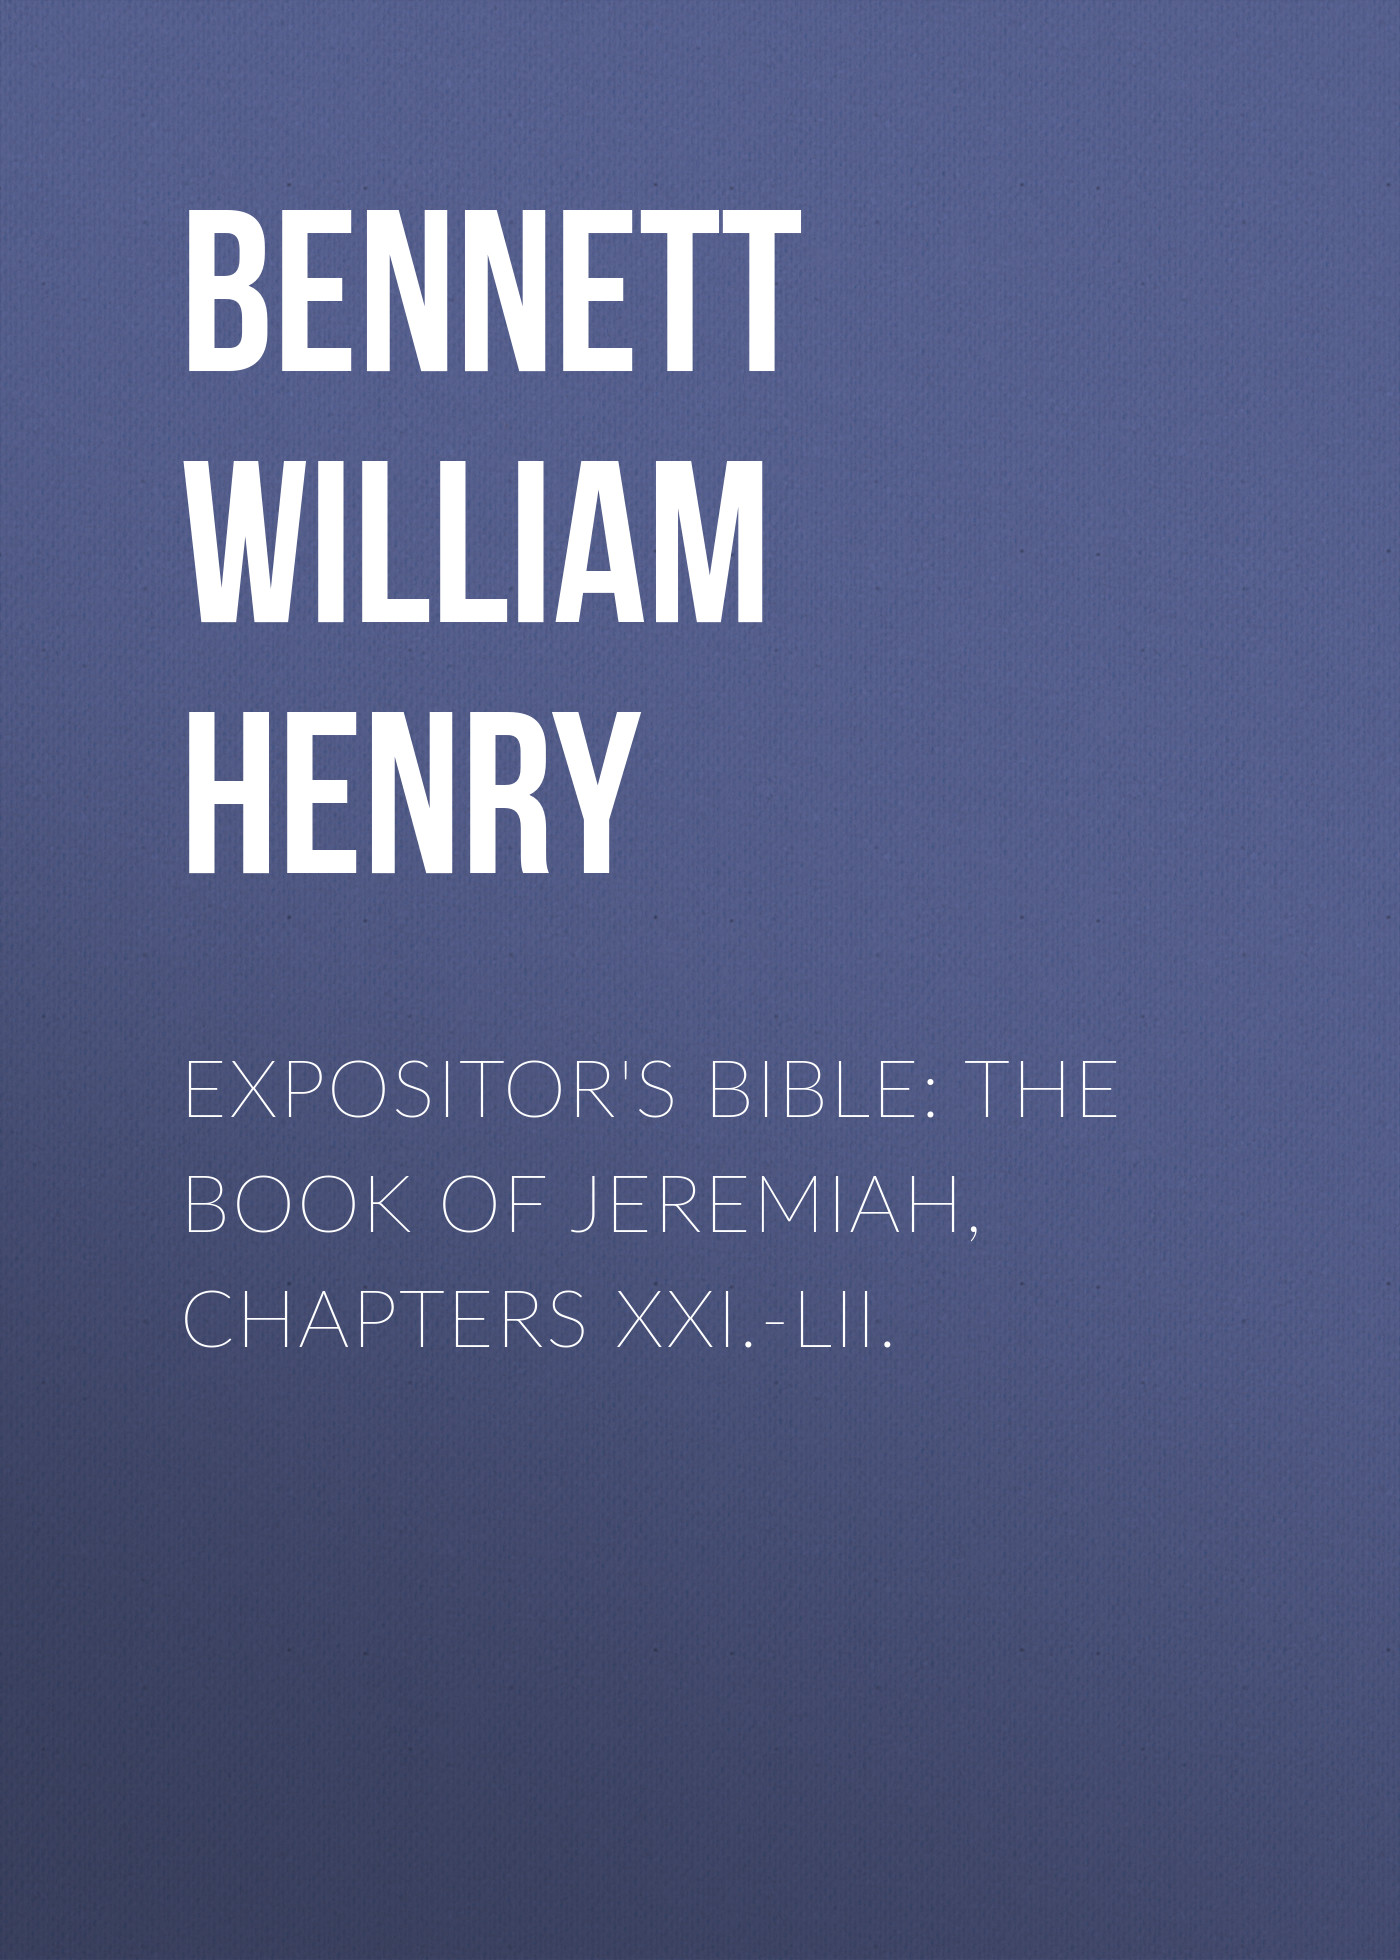 Bennett William Henry Expositor's Bible: The Book of Jeremiah, Chapters XXI.-LII. frank henry gaines bible course